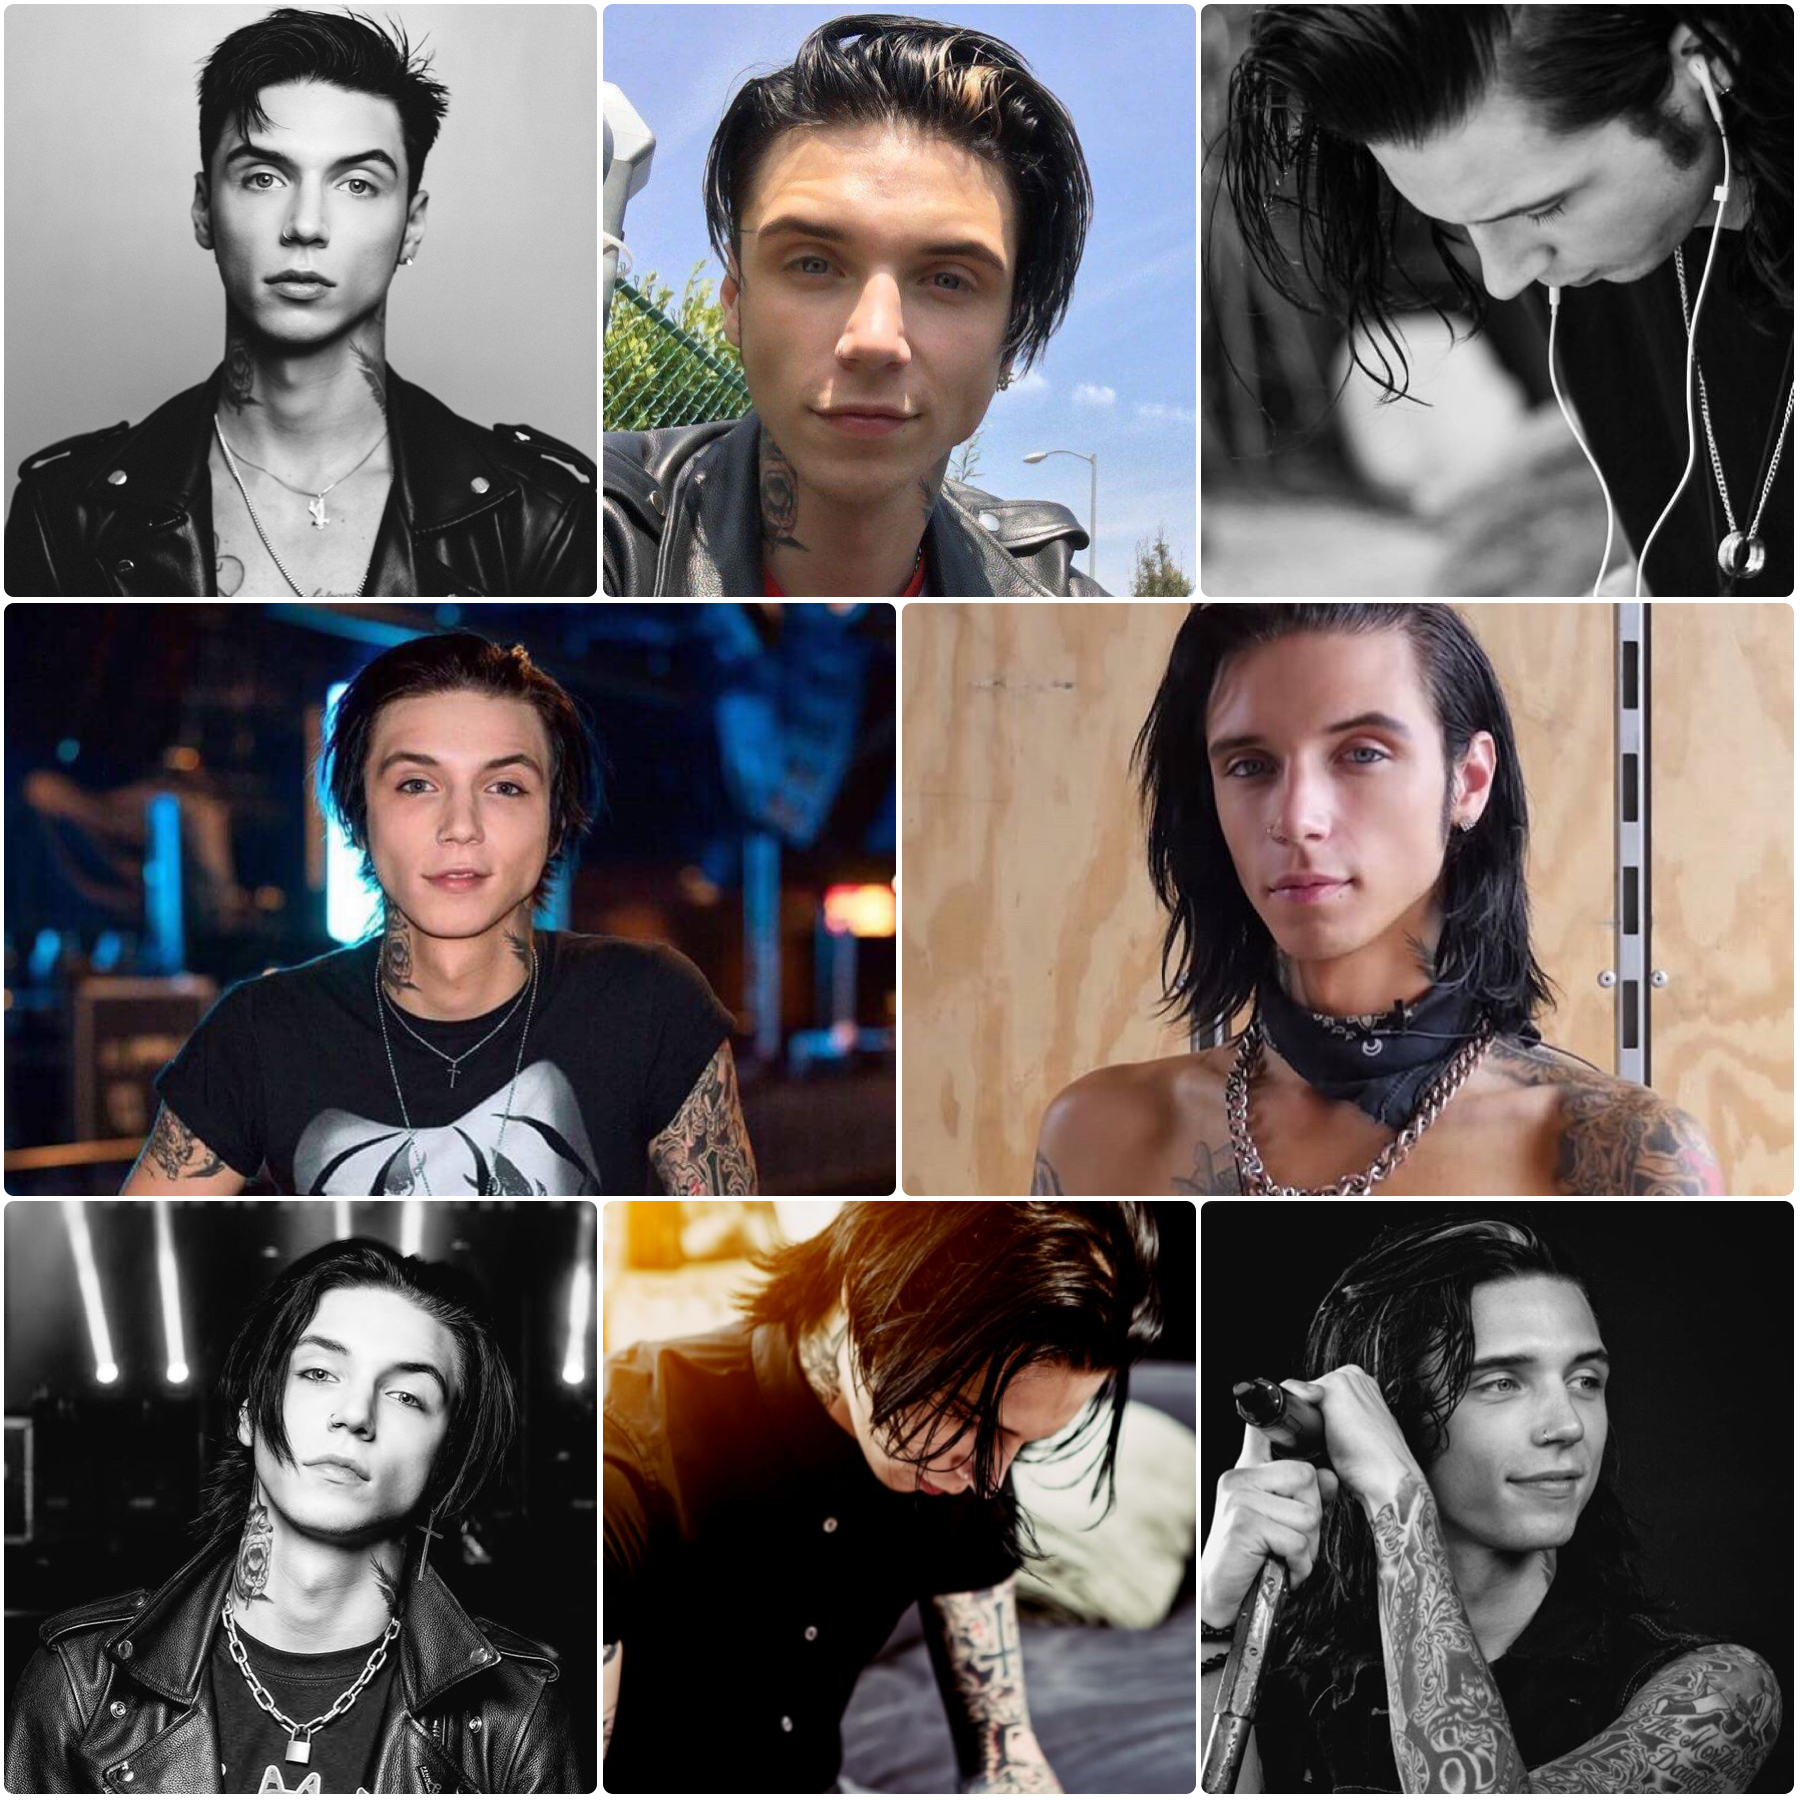 Happy Birthday #andyblack 🖤🖤🖤 You Bless Us Everyday With